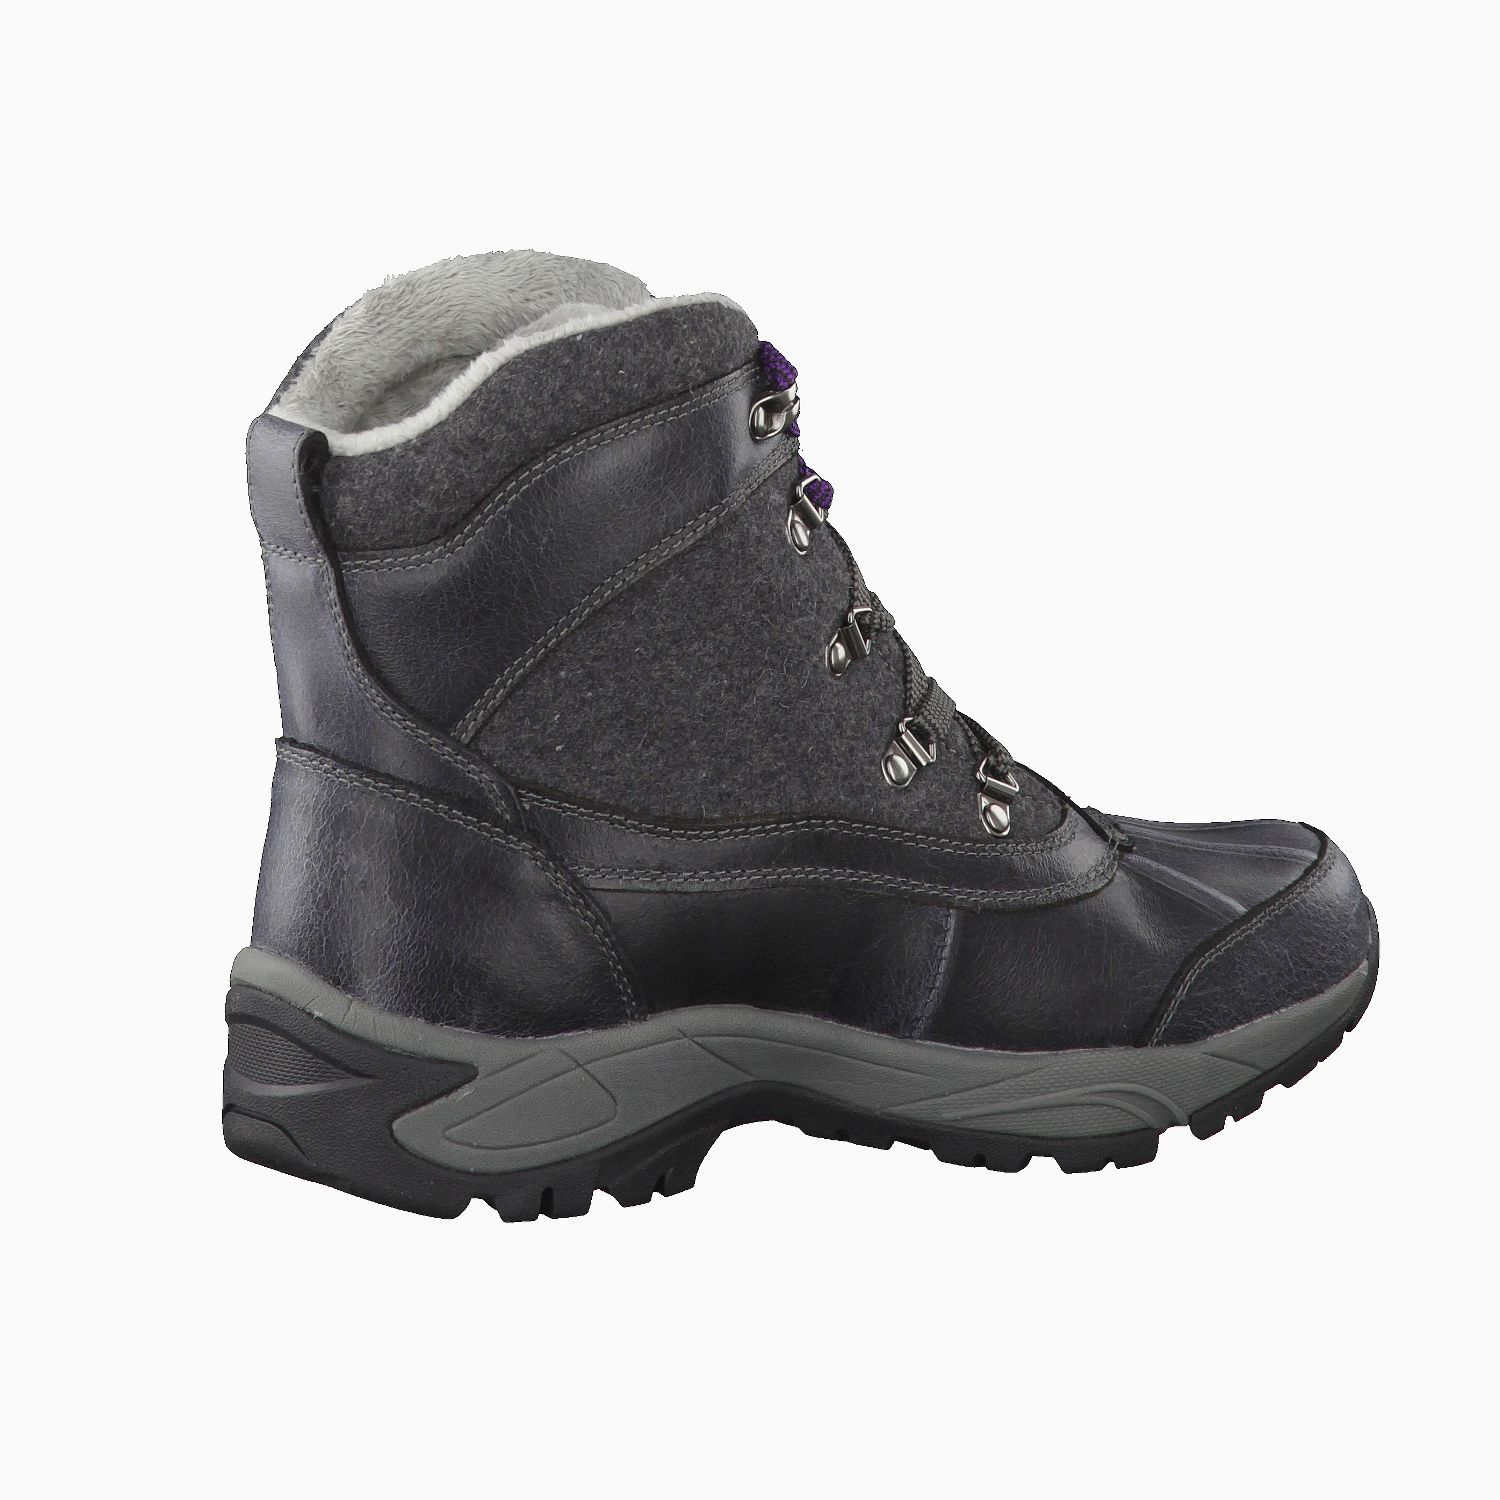 Kodiak Rochelle Women's Waterproof Winter Boots rated to